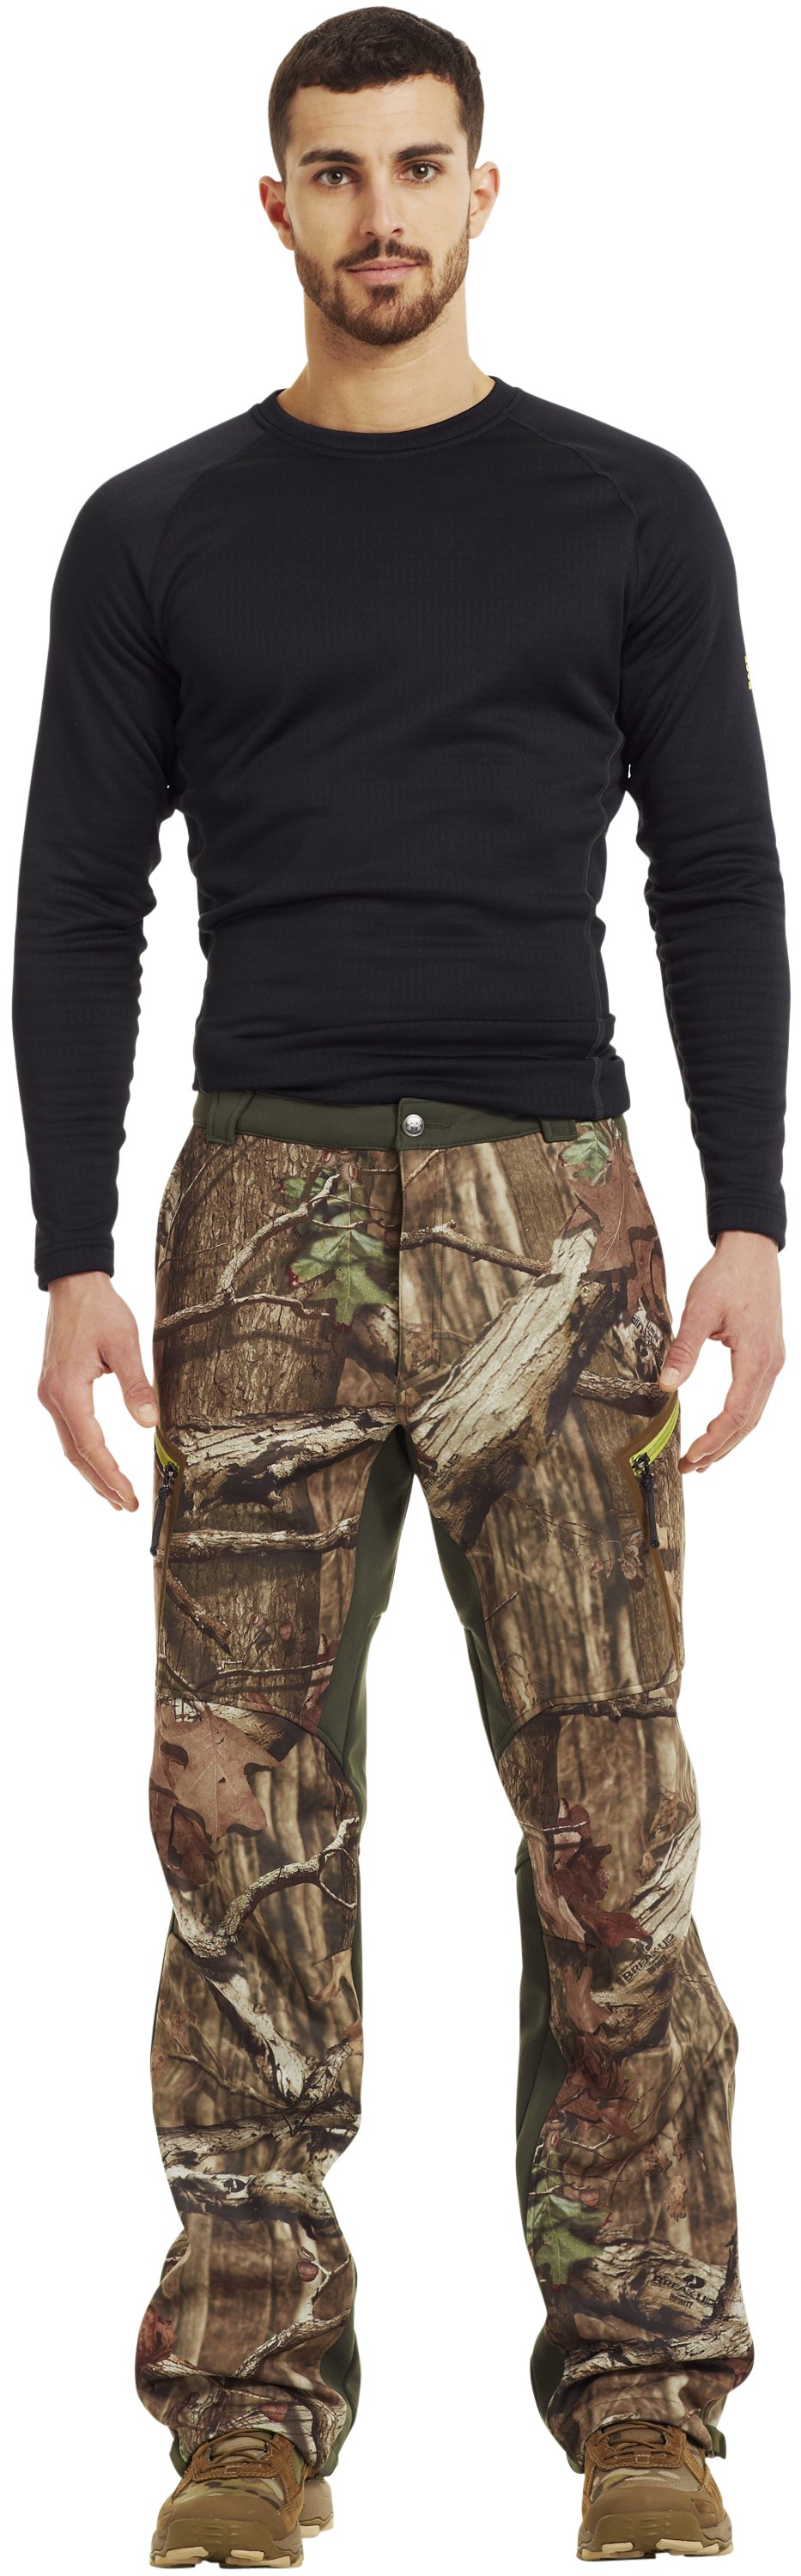 Men's ColdGear® Infrared Ridge Reaper® Softshell Pants, Mossy Oak Break-Up Infinity